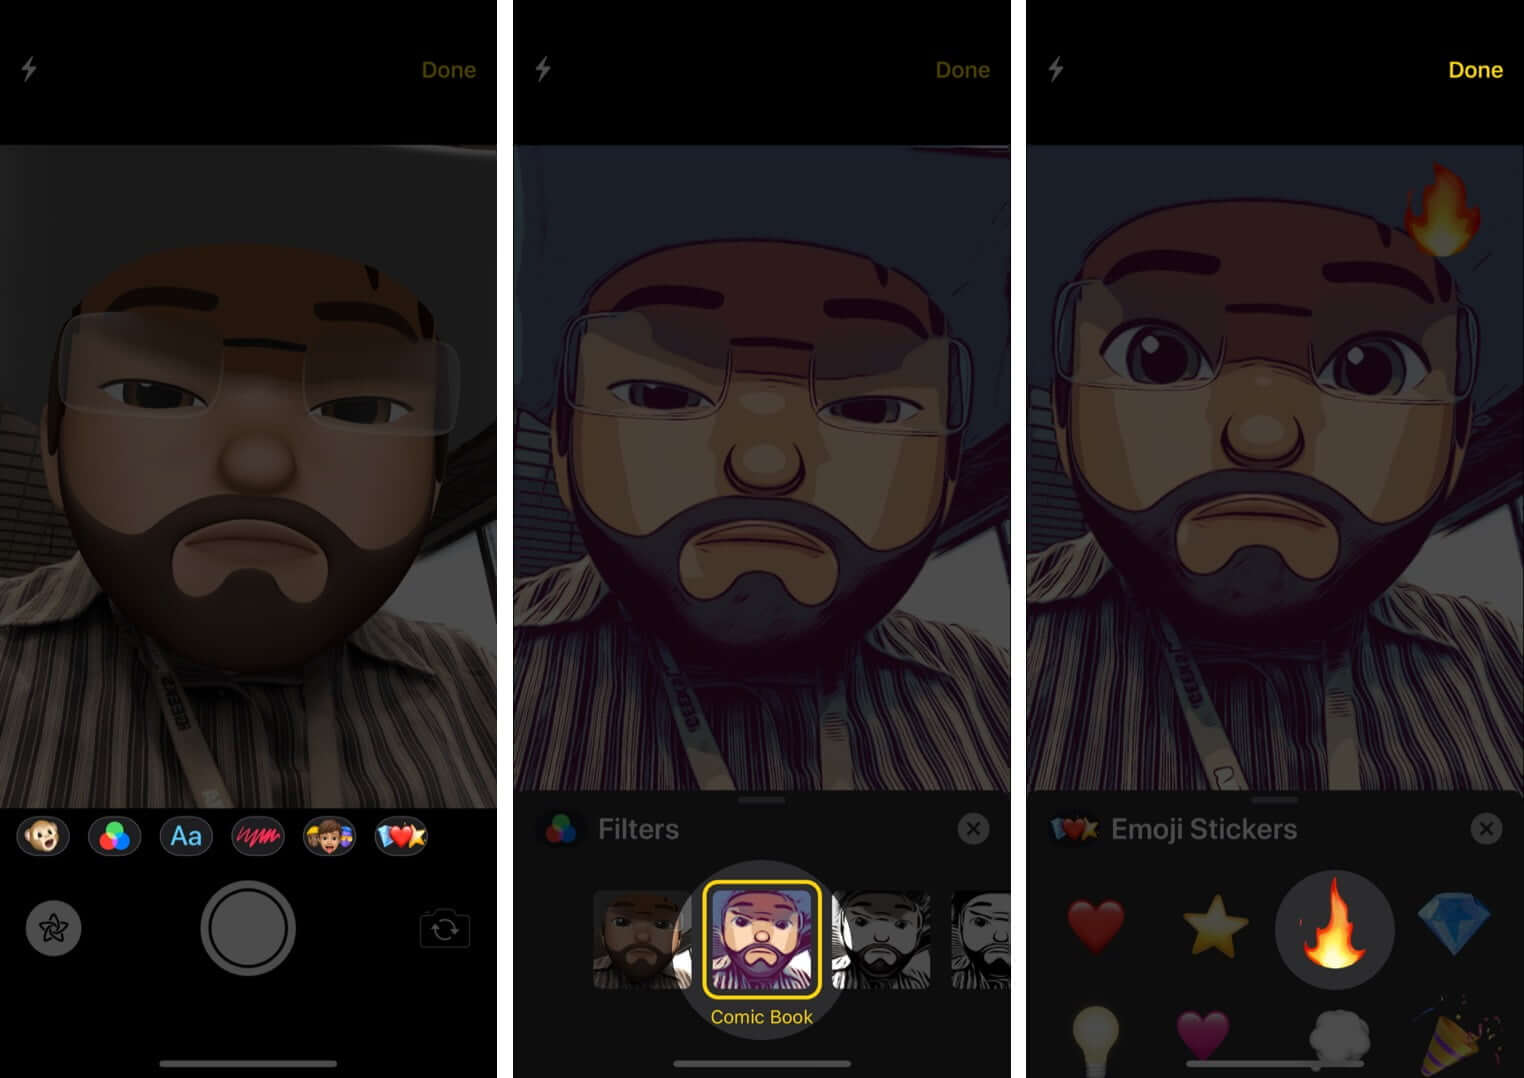 Use Camera Effects with Memoji on iPhone